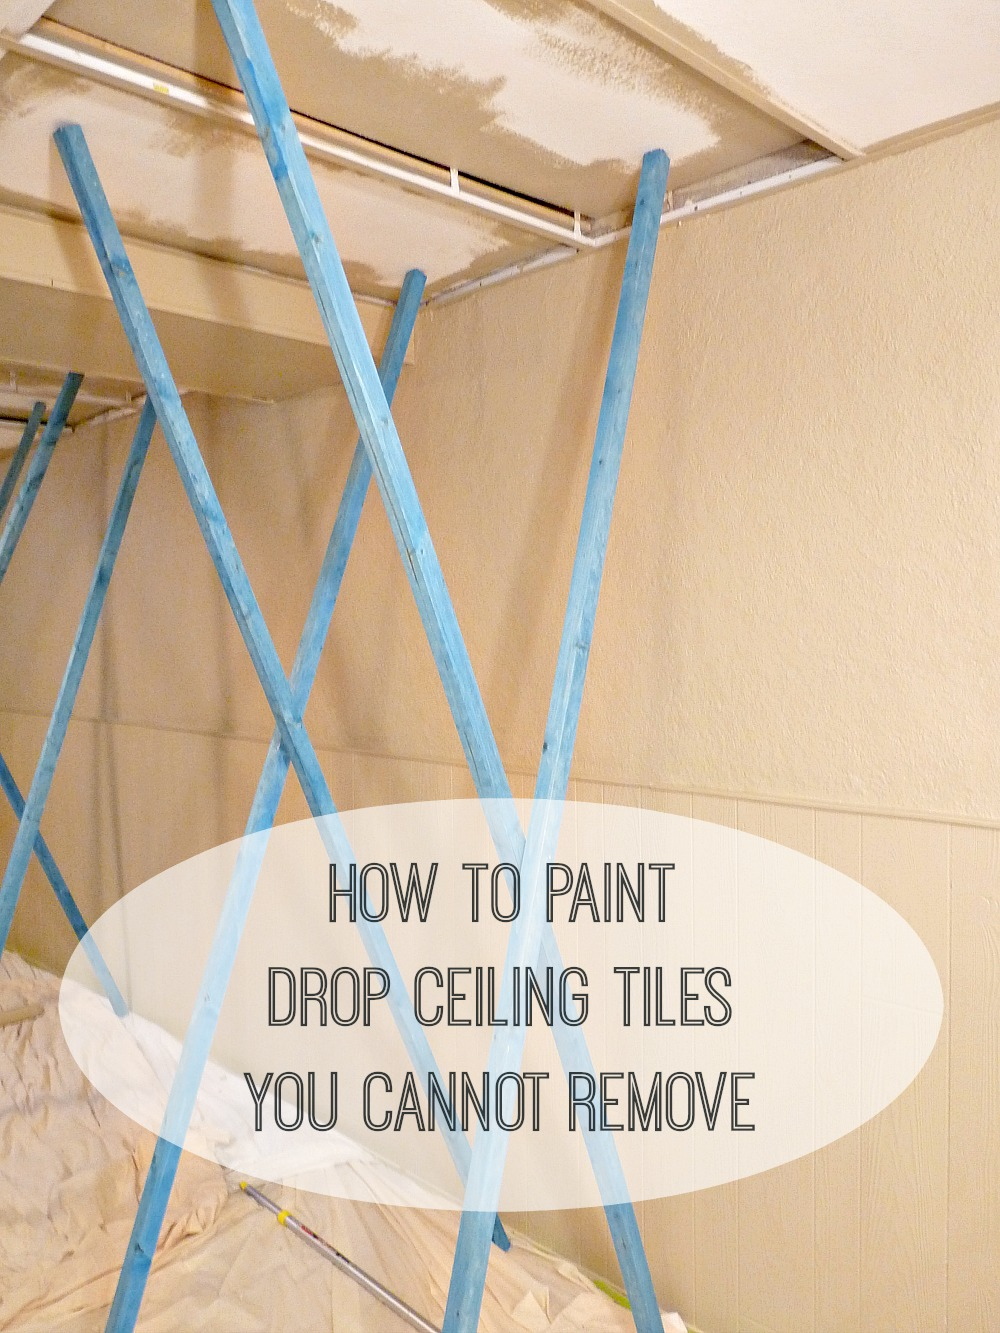 Quick Tip for Painting Ceiling Tiles You Cannot Remove